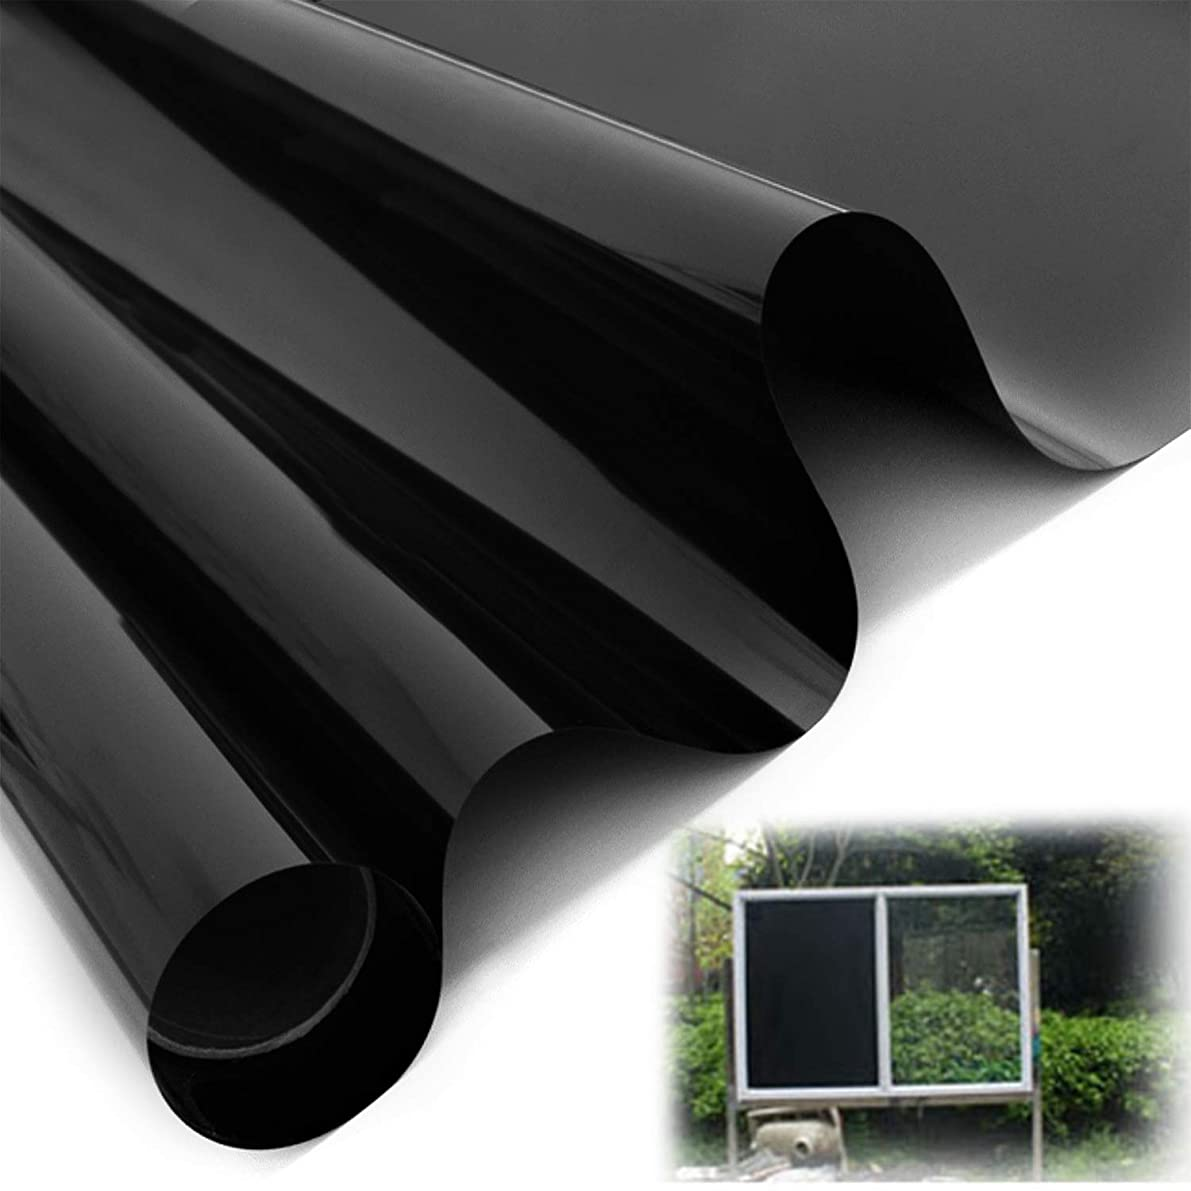 Blackout Reflective Window Film - 100% Light Blocking Static Cling, Heat Control Anti UV Window Tint for Privacy, Home Security, Heat Rejection and Day Sleeping (78.5 x 15.5 inch)